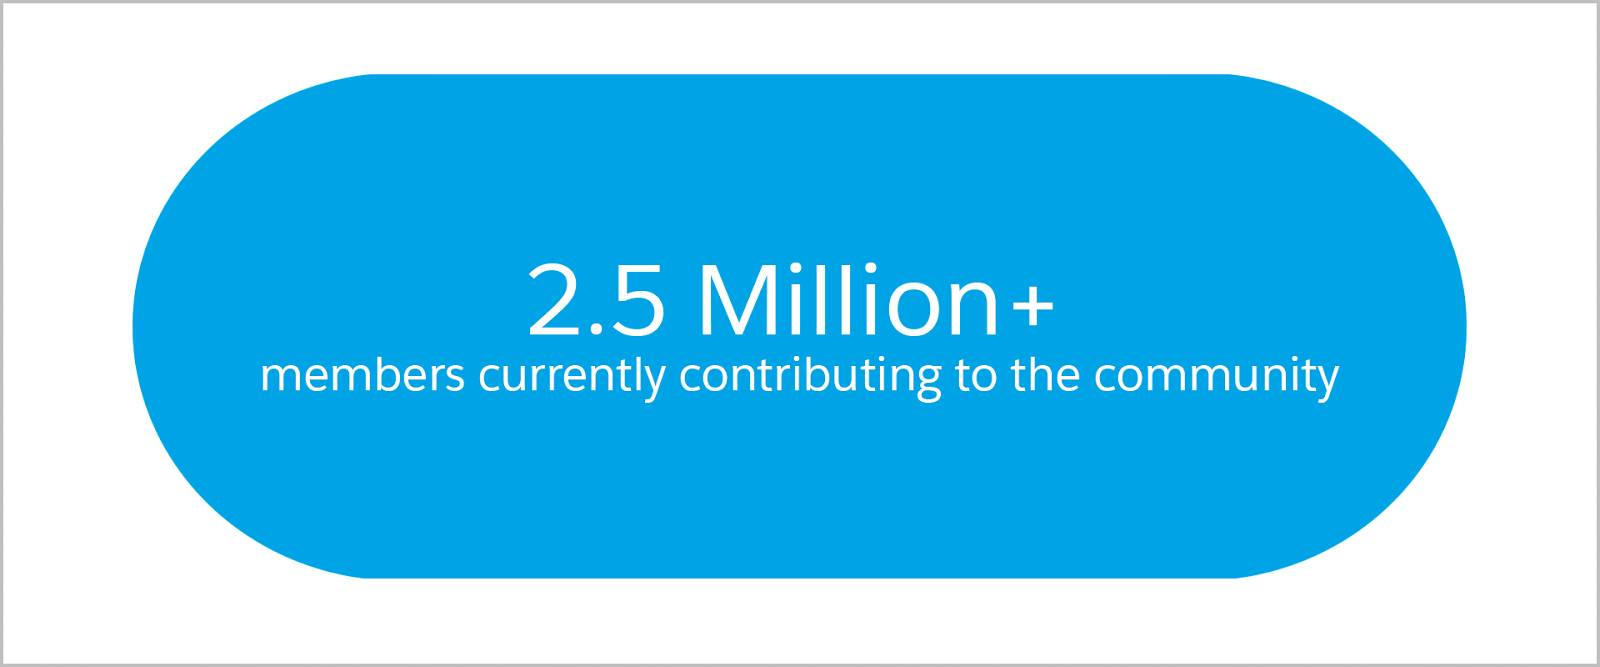 There are over 2.5 million members currently contributing to the Salesforce community.